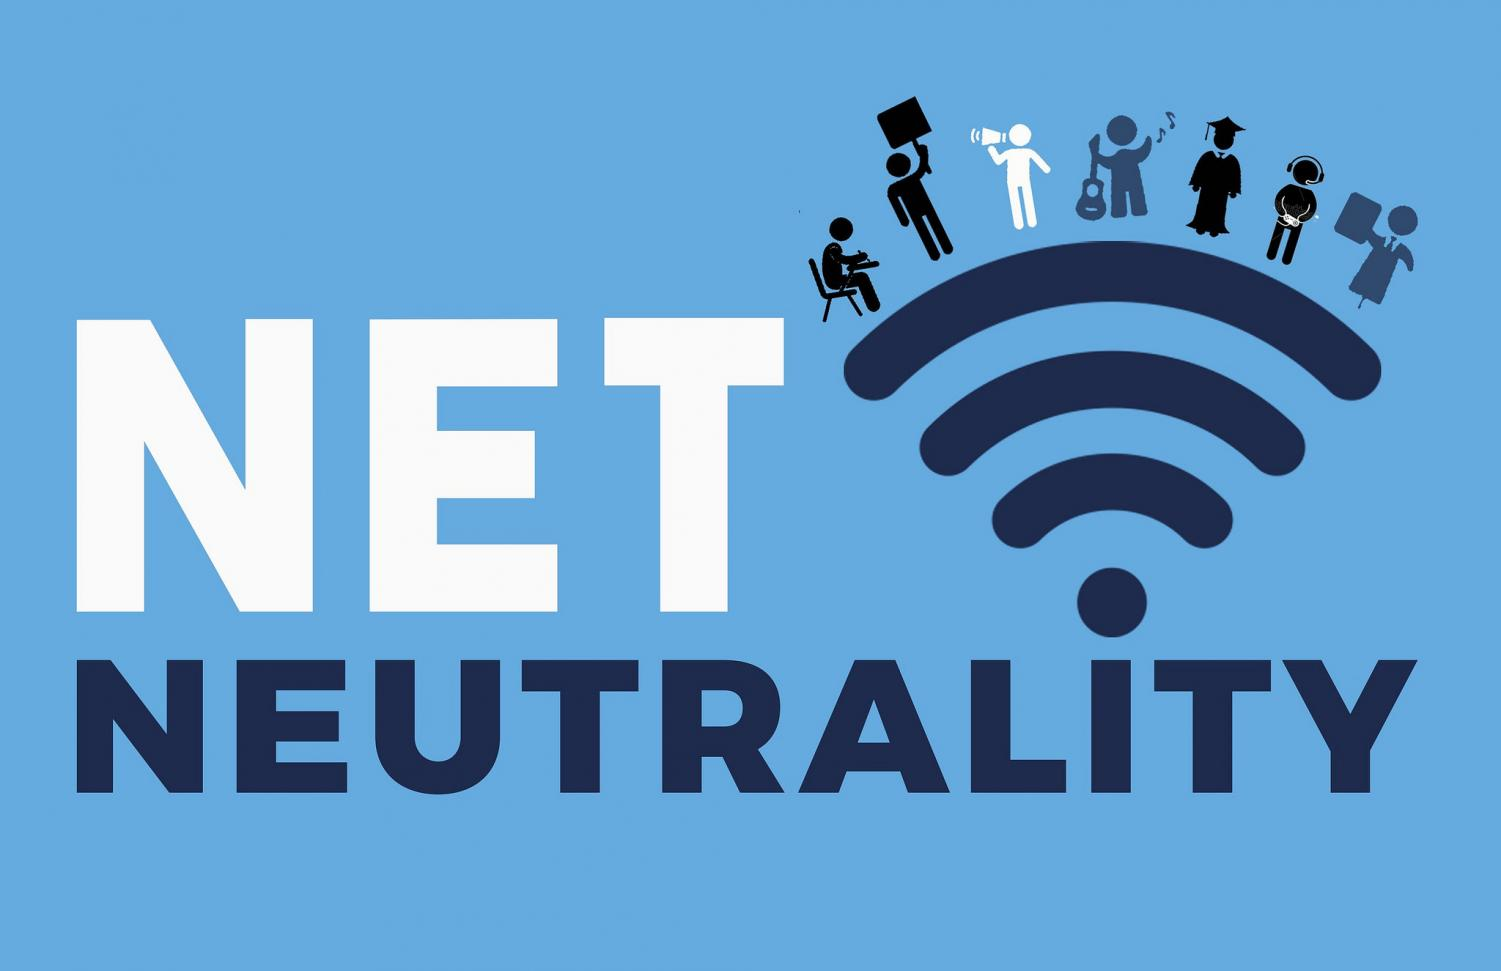 Net neutrality, an important part of internet browsing